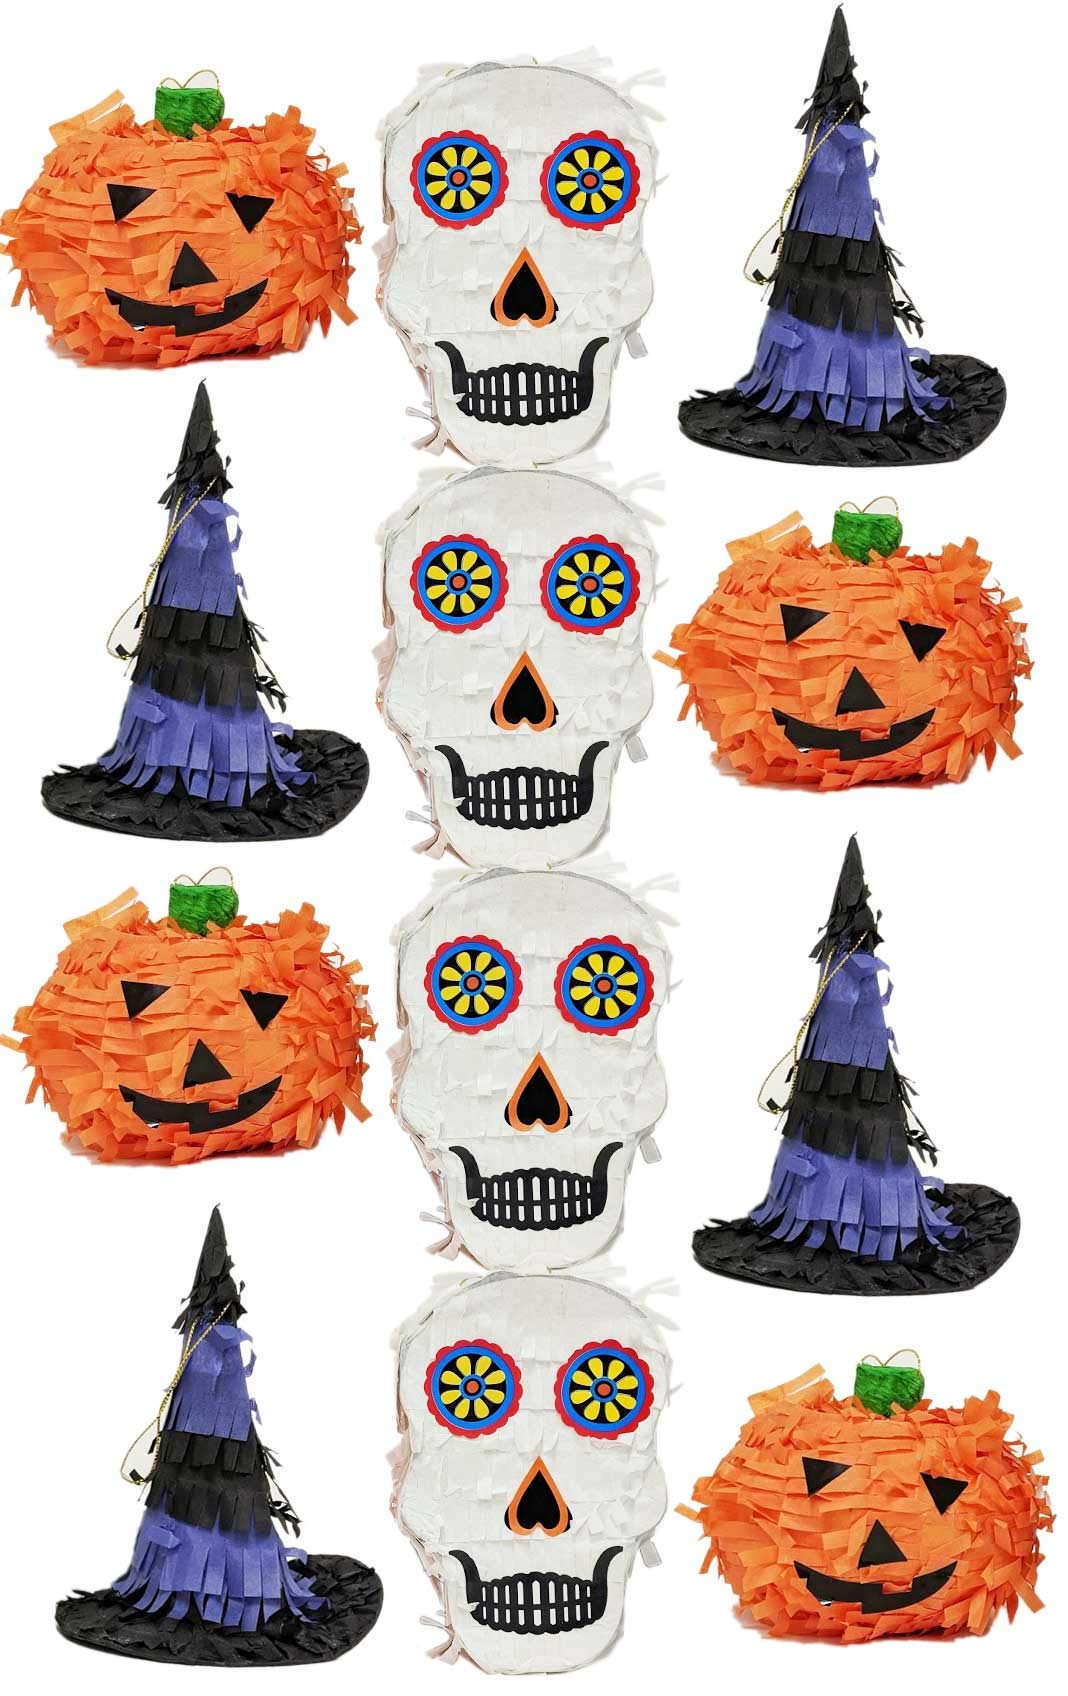 Halloween Mini Pinatas Party Favor Sugar Skull, Witch's Hat, Pumpkin - Assorted 12 pack by Halloween Hooray